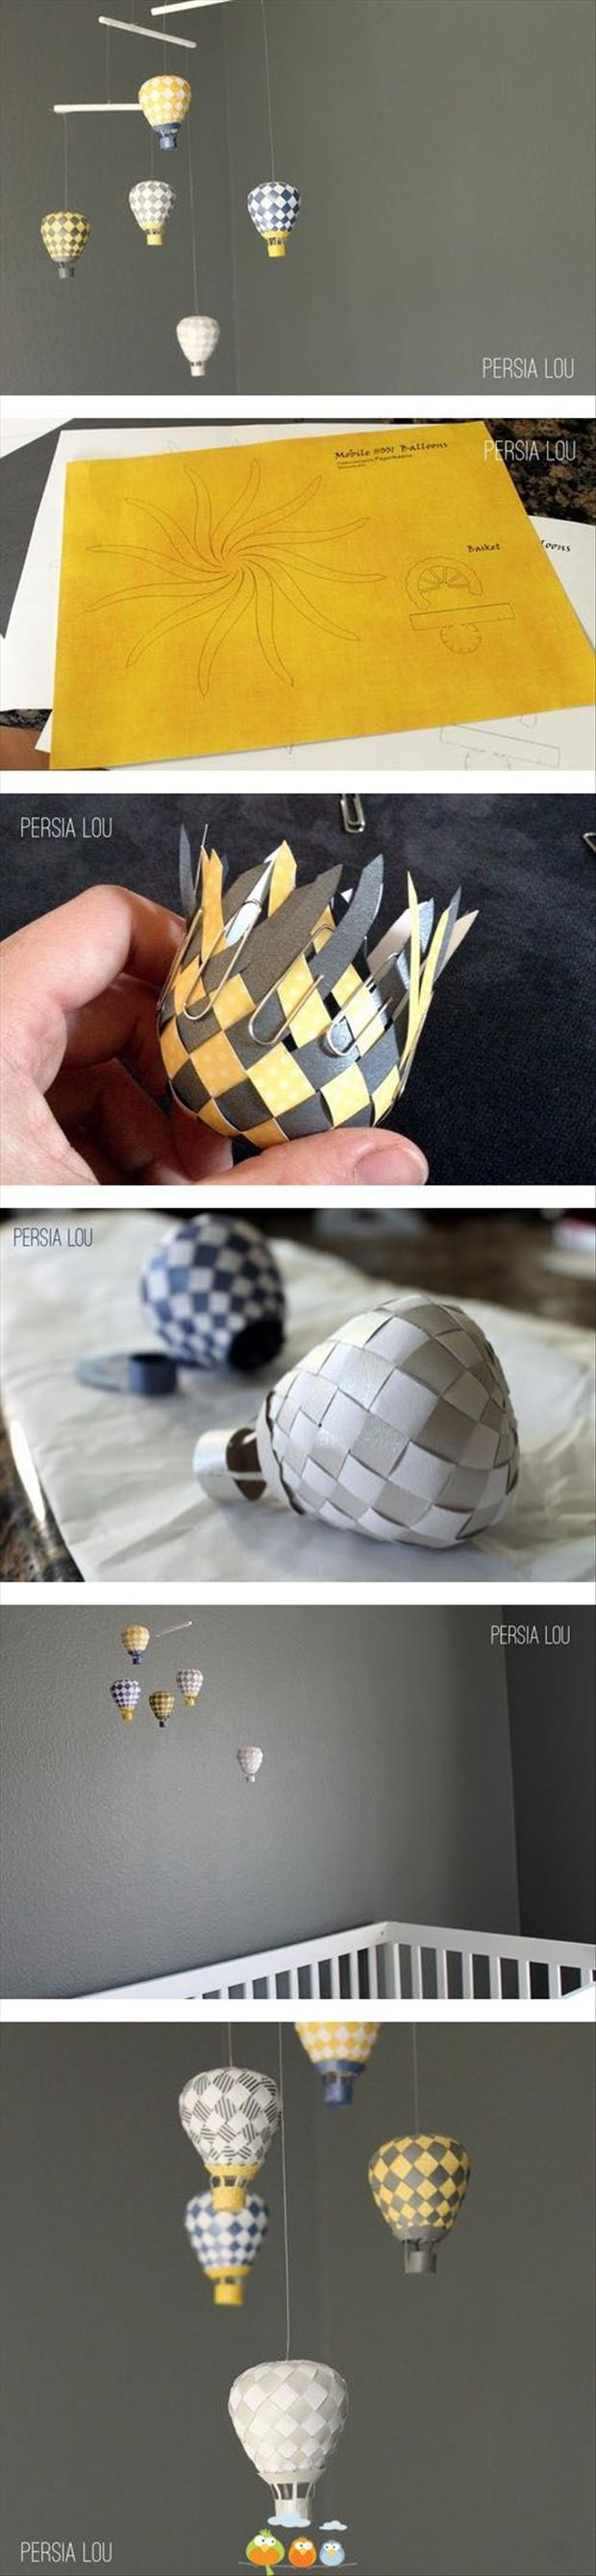 craft ideas (11)